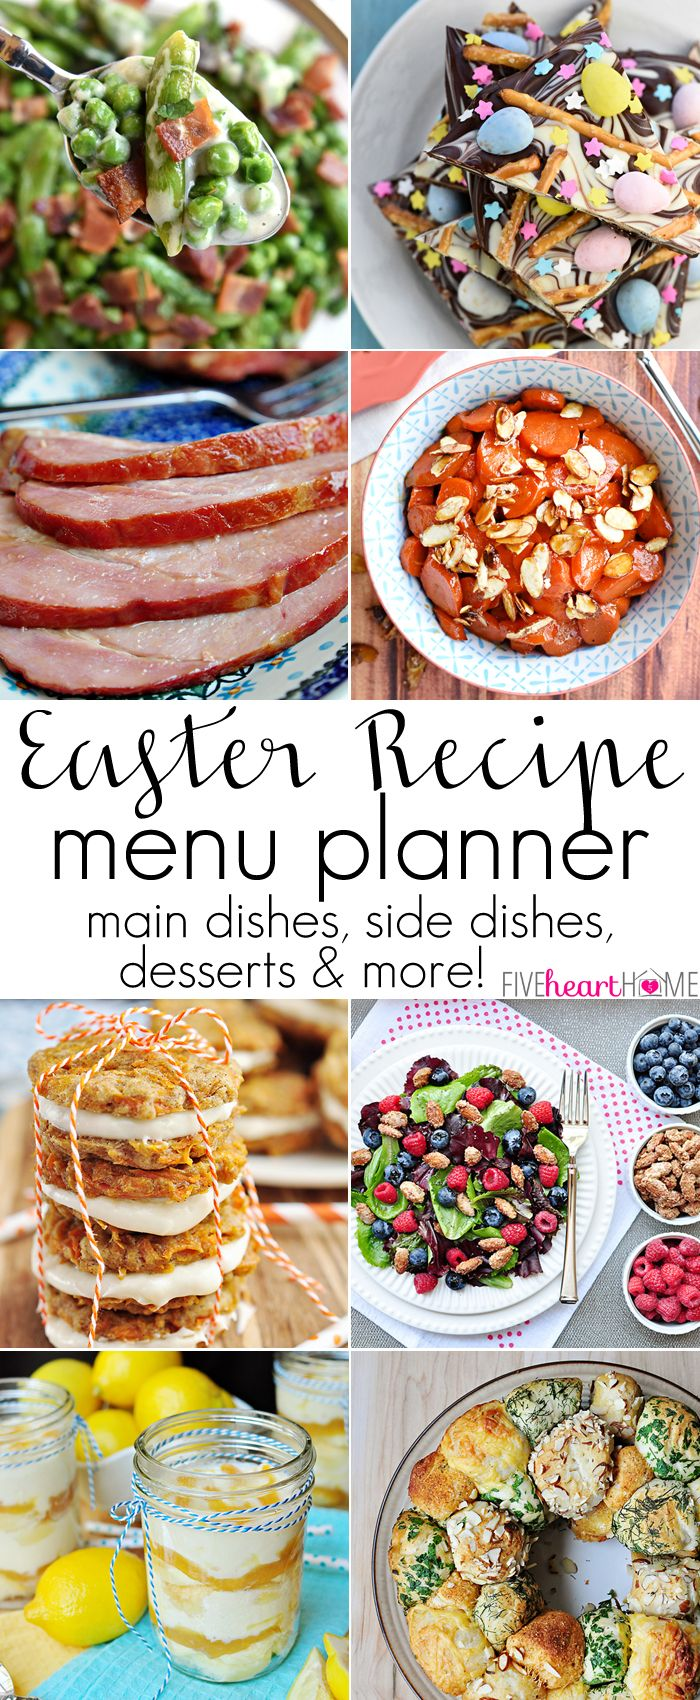 Best 25+ Easter weekend ideas on Pinterest | Easter sunday recipe ideas, Image easter brunch and ...